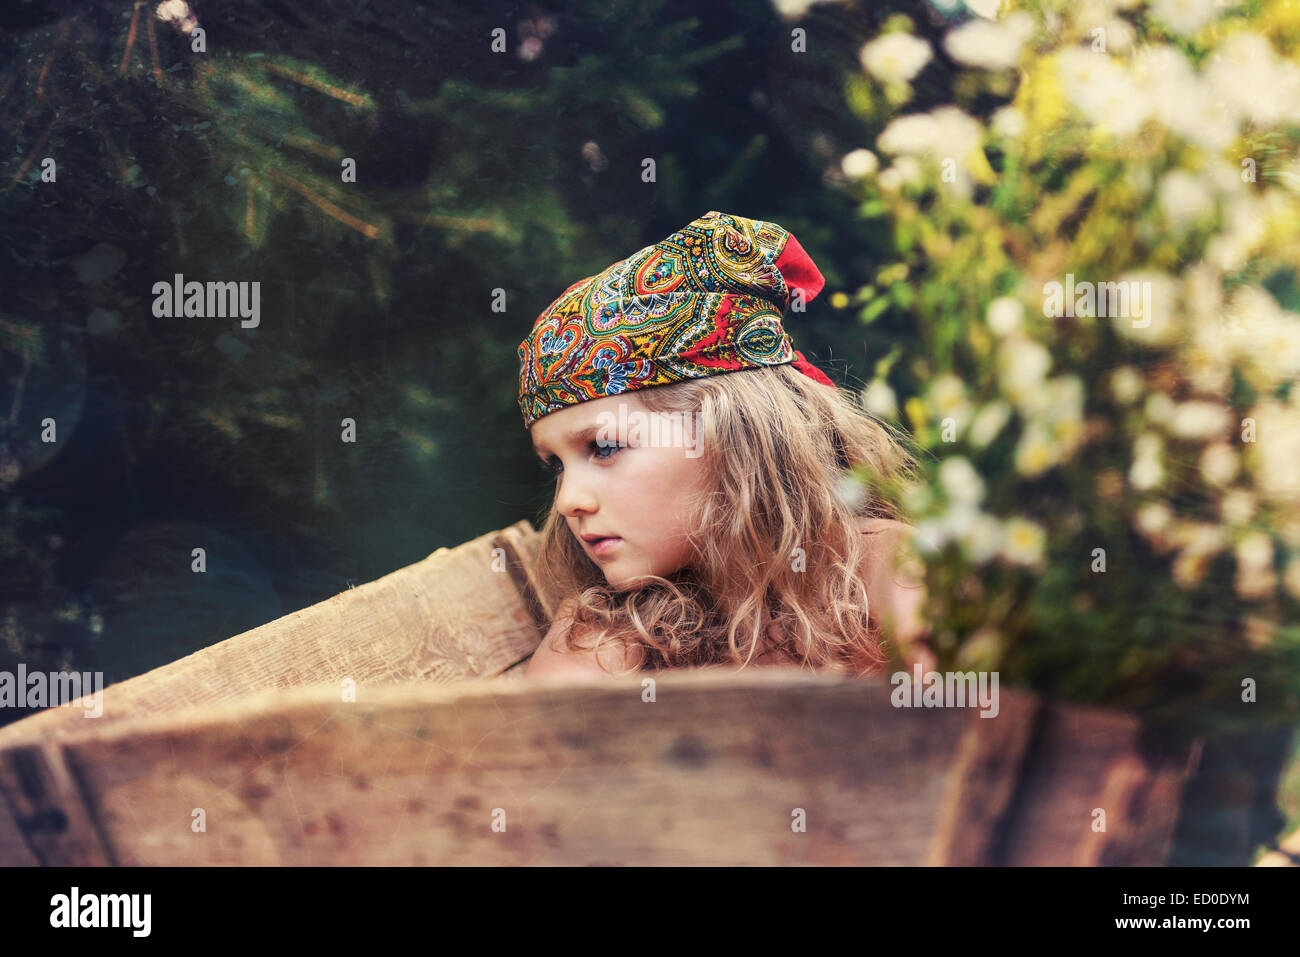 Portrait of girl (4-5) in traditional headscarf - Stock Image